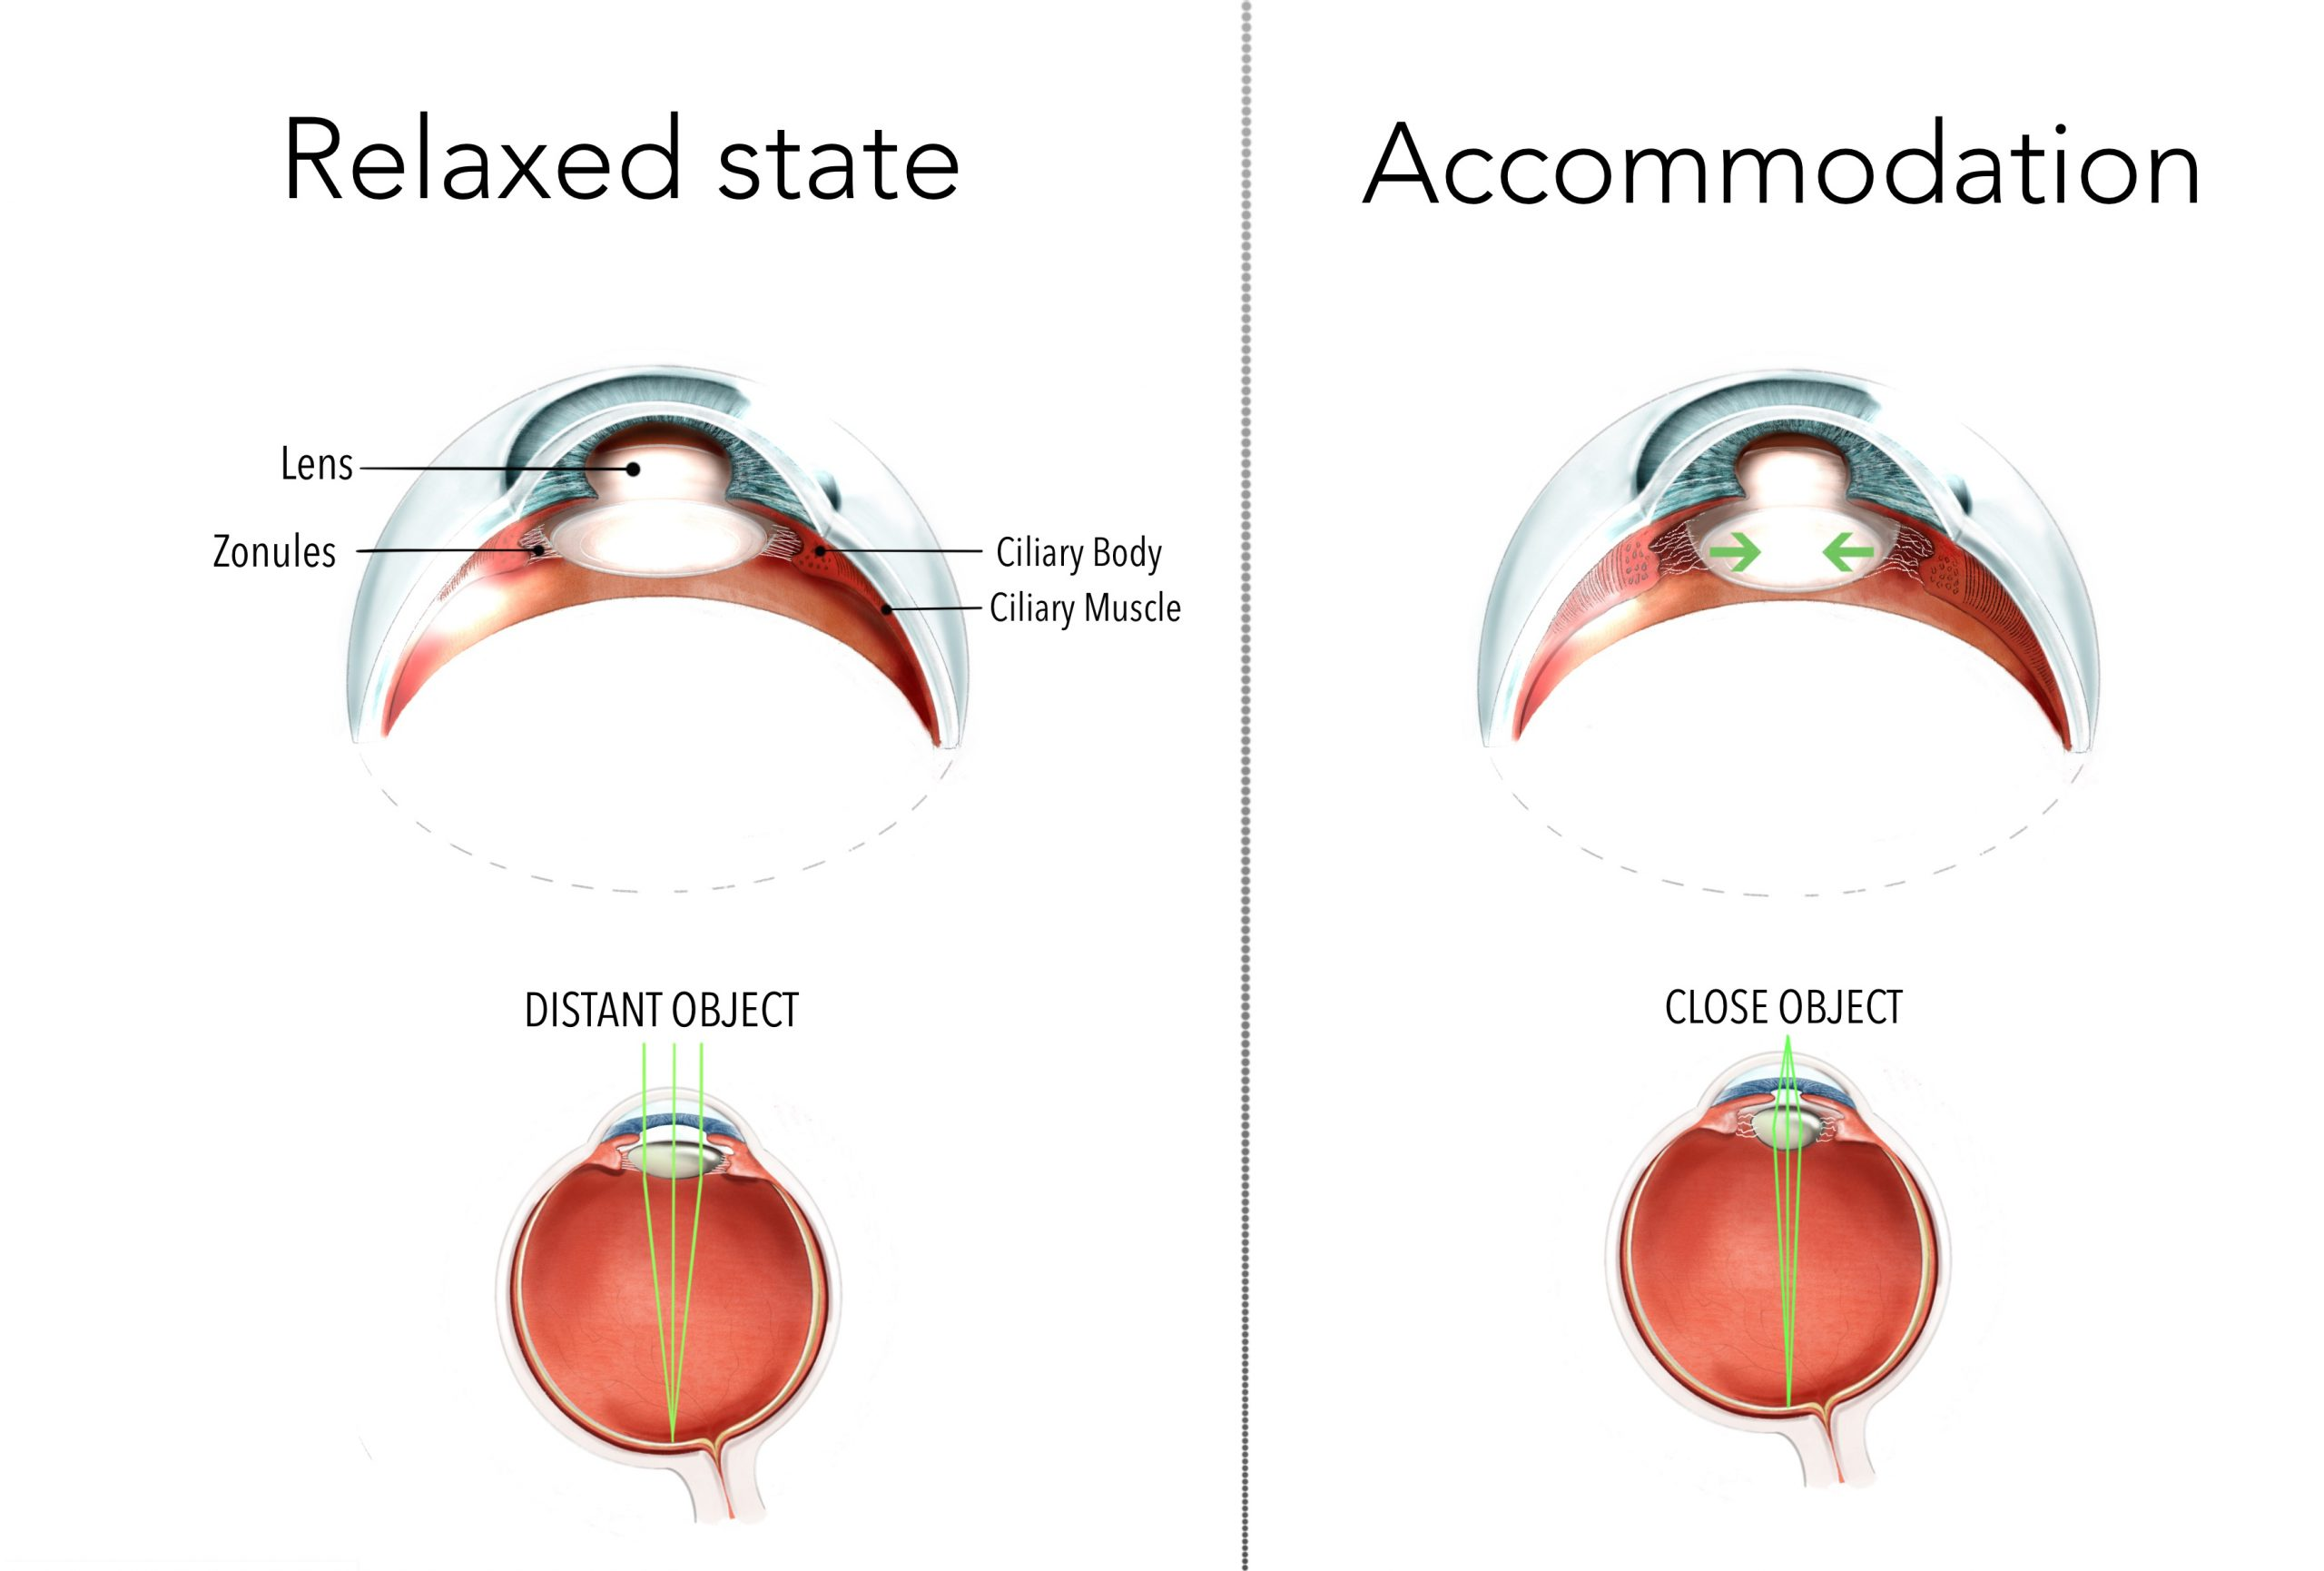 Diagrams showing the inside workings of the eye. When focusing at a distant object, the ciliary body tightens, elongating the lens. When focusing at a near object, the ciliary body relaxes and the lens becomes shorter and thicker.